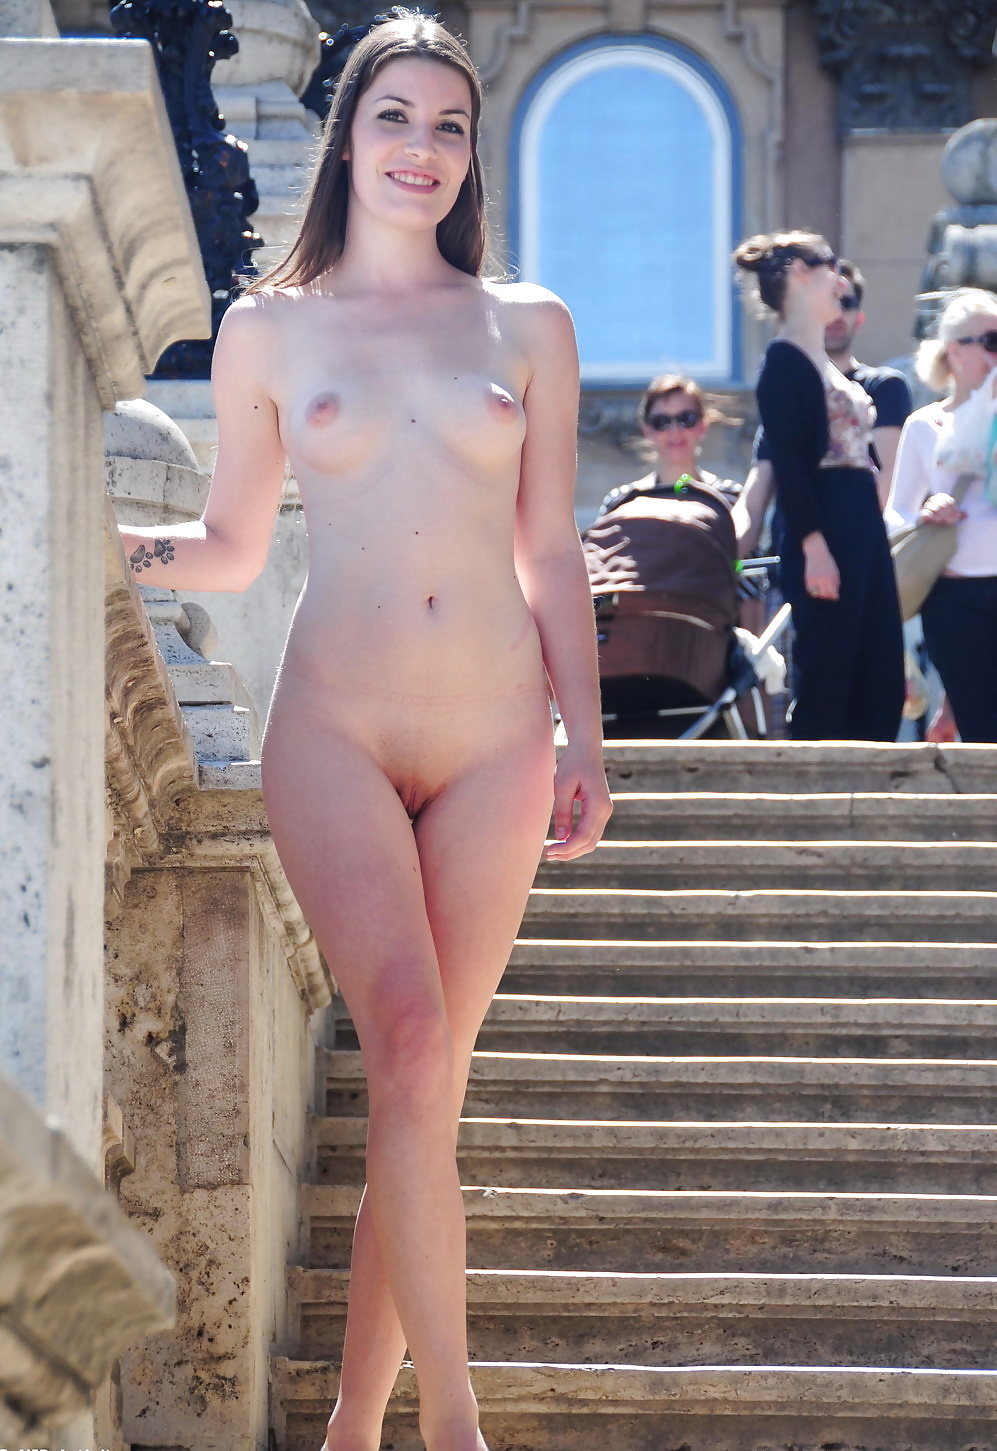 Naked Women Embarrassed In Public - Image 4 Fap-5631